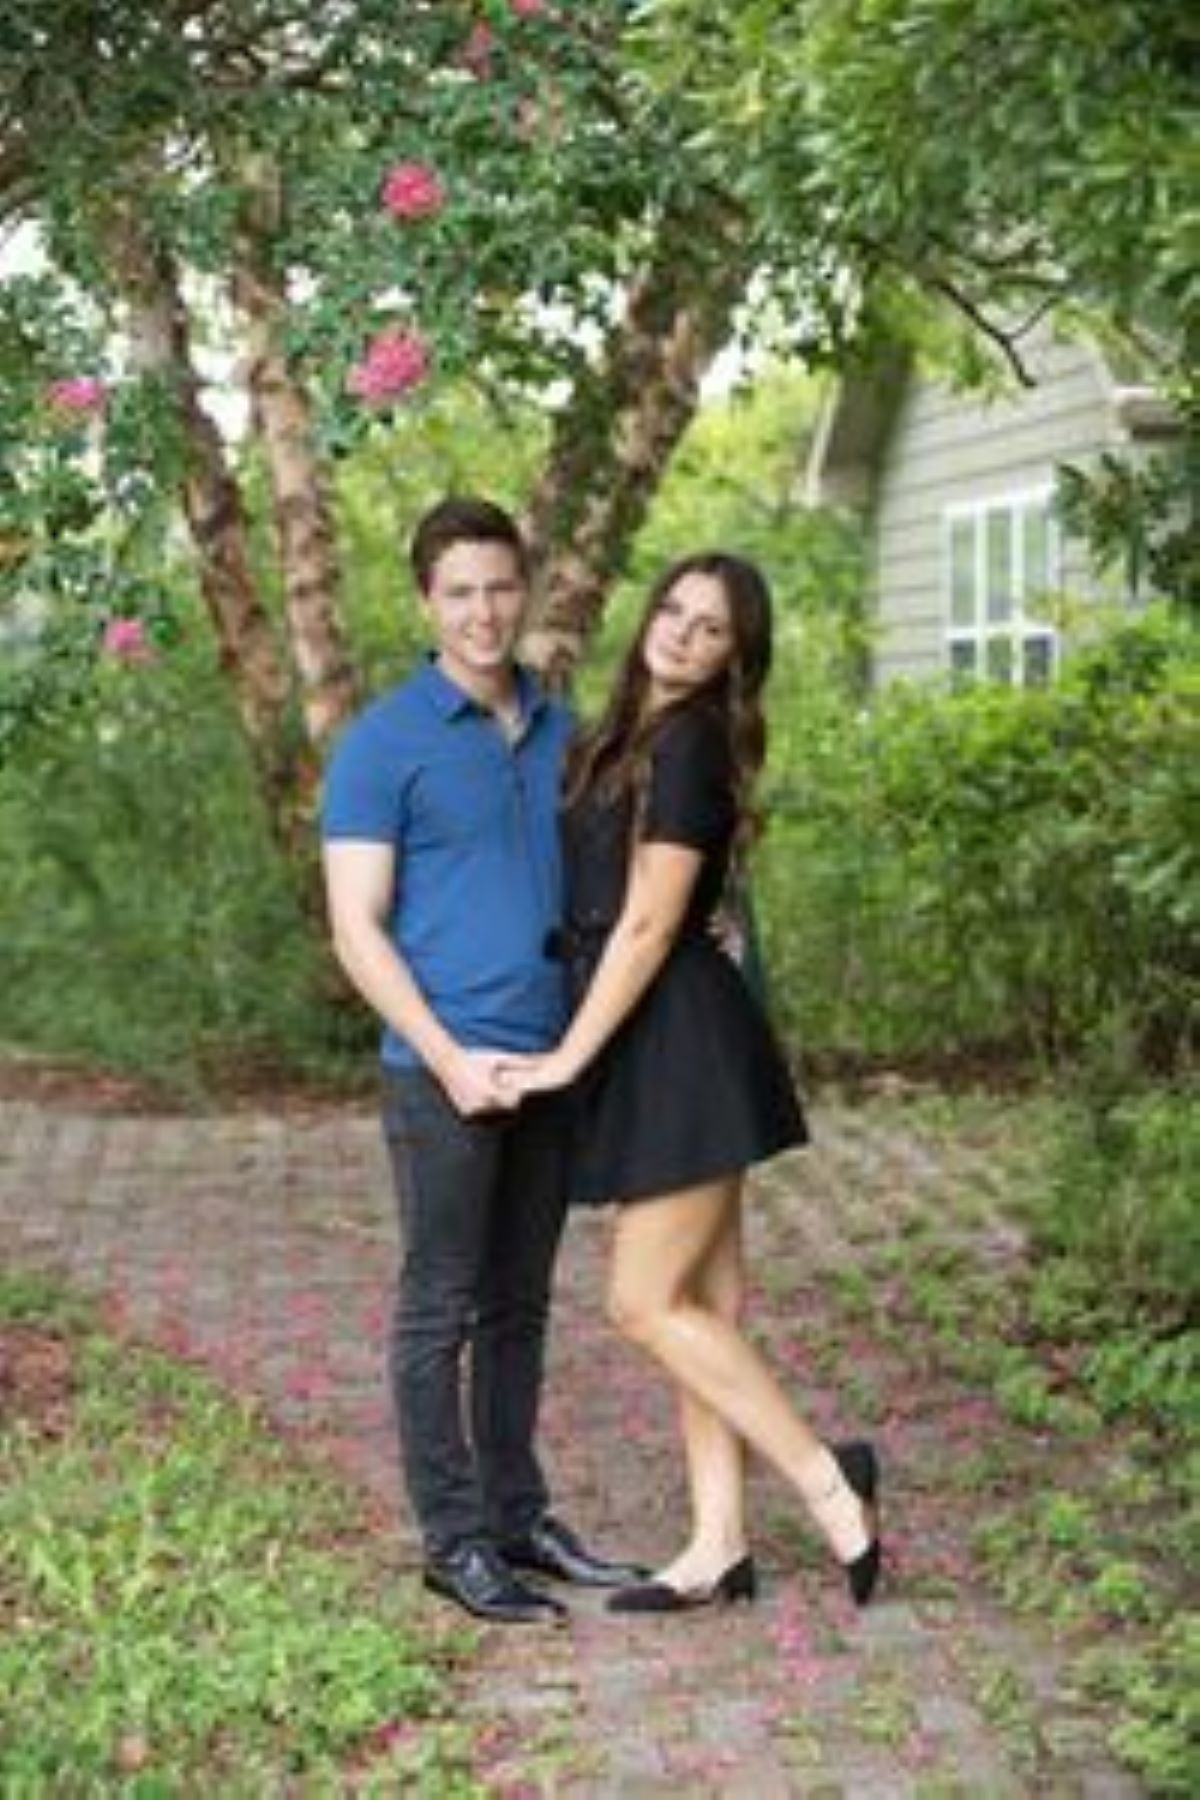 '90 Day Fiancé': These Cast Members Are Set to Appear on Other Shows